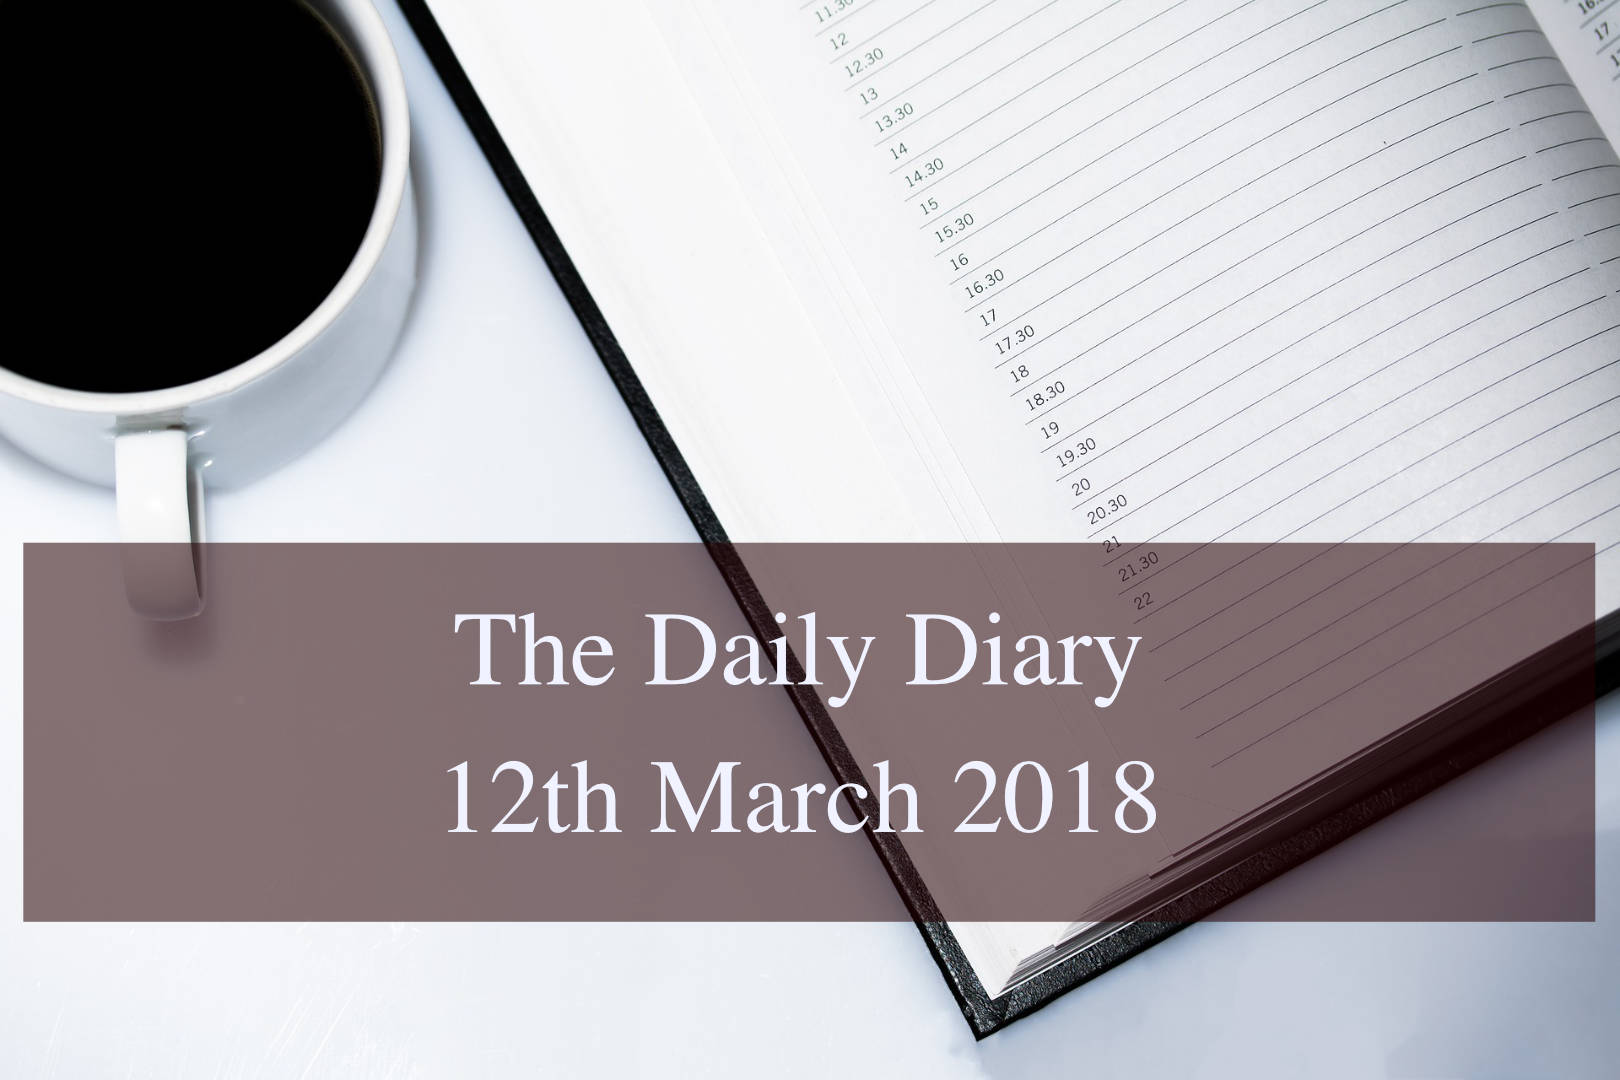 Daily Diary 12th March 2018